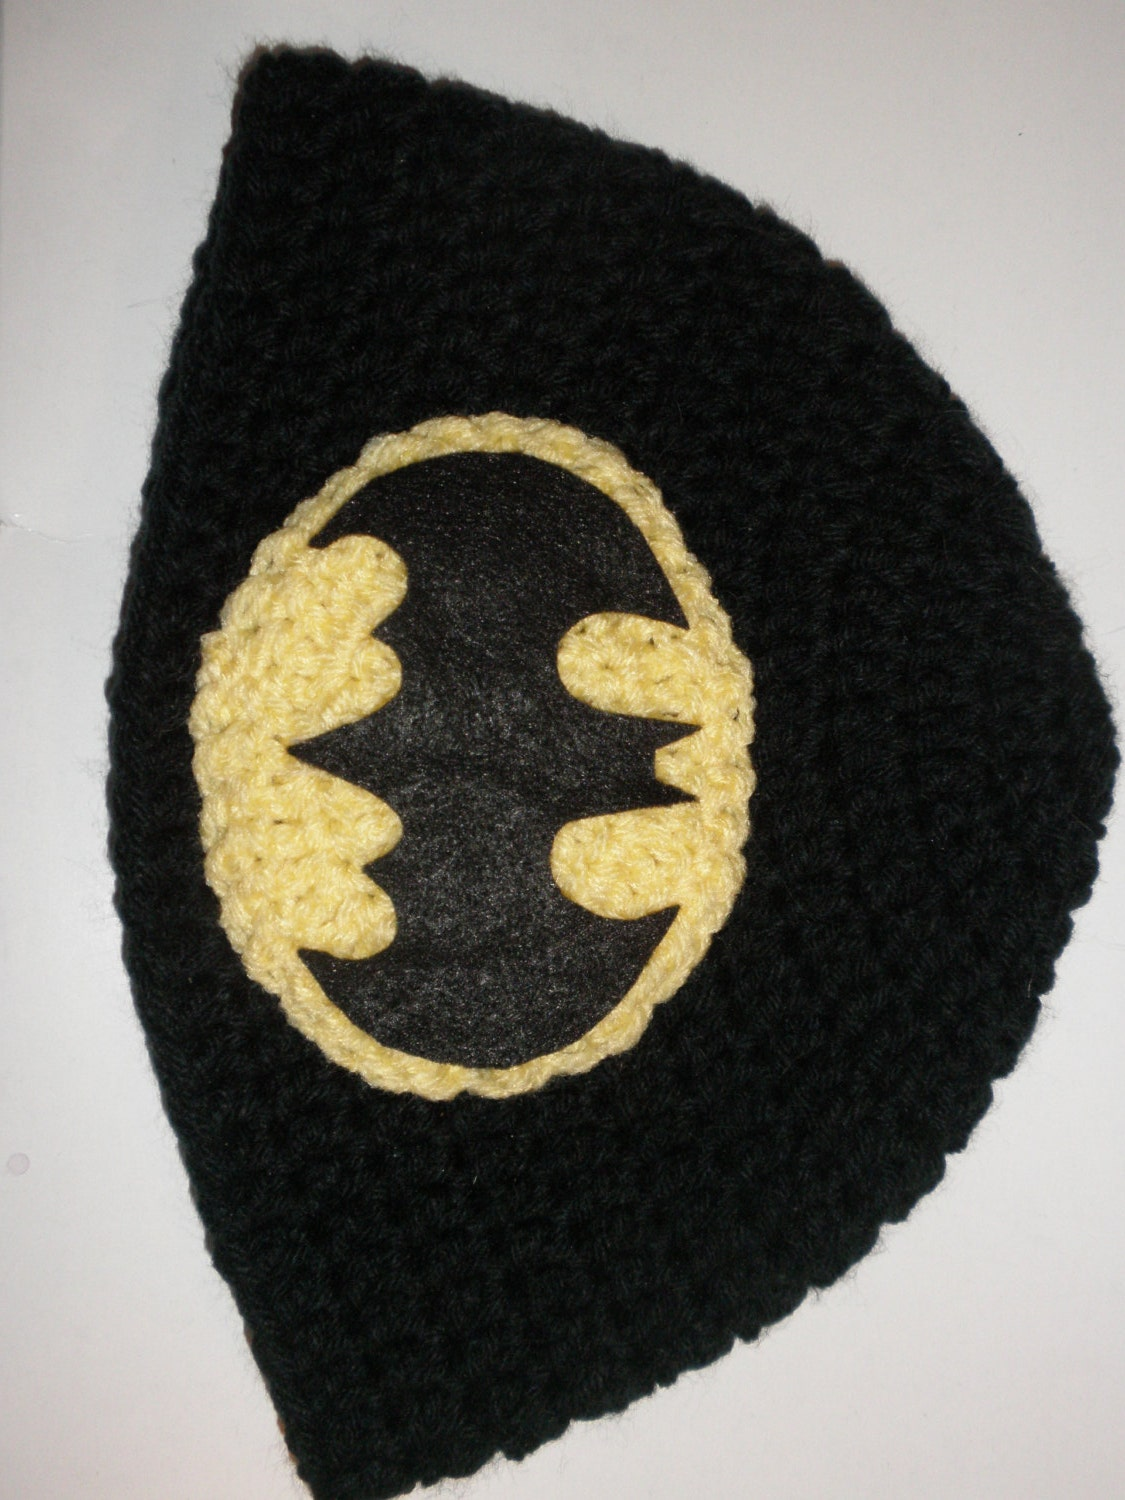 Free Crochet Pattern For Batman Hat : Batman inspired crochet hat baby newborn photo by ...